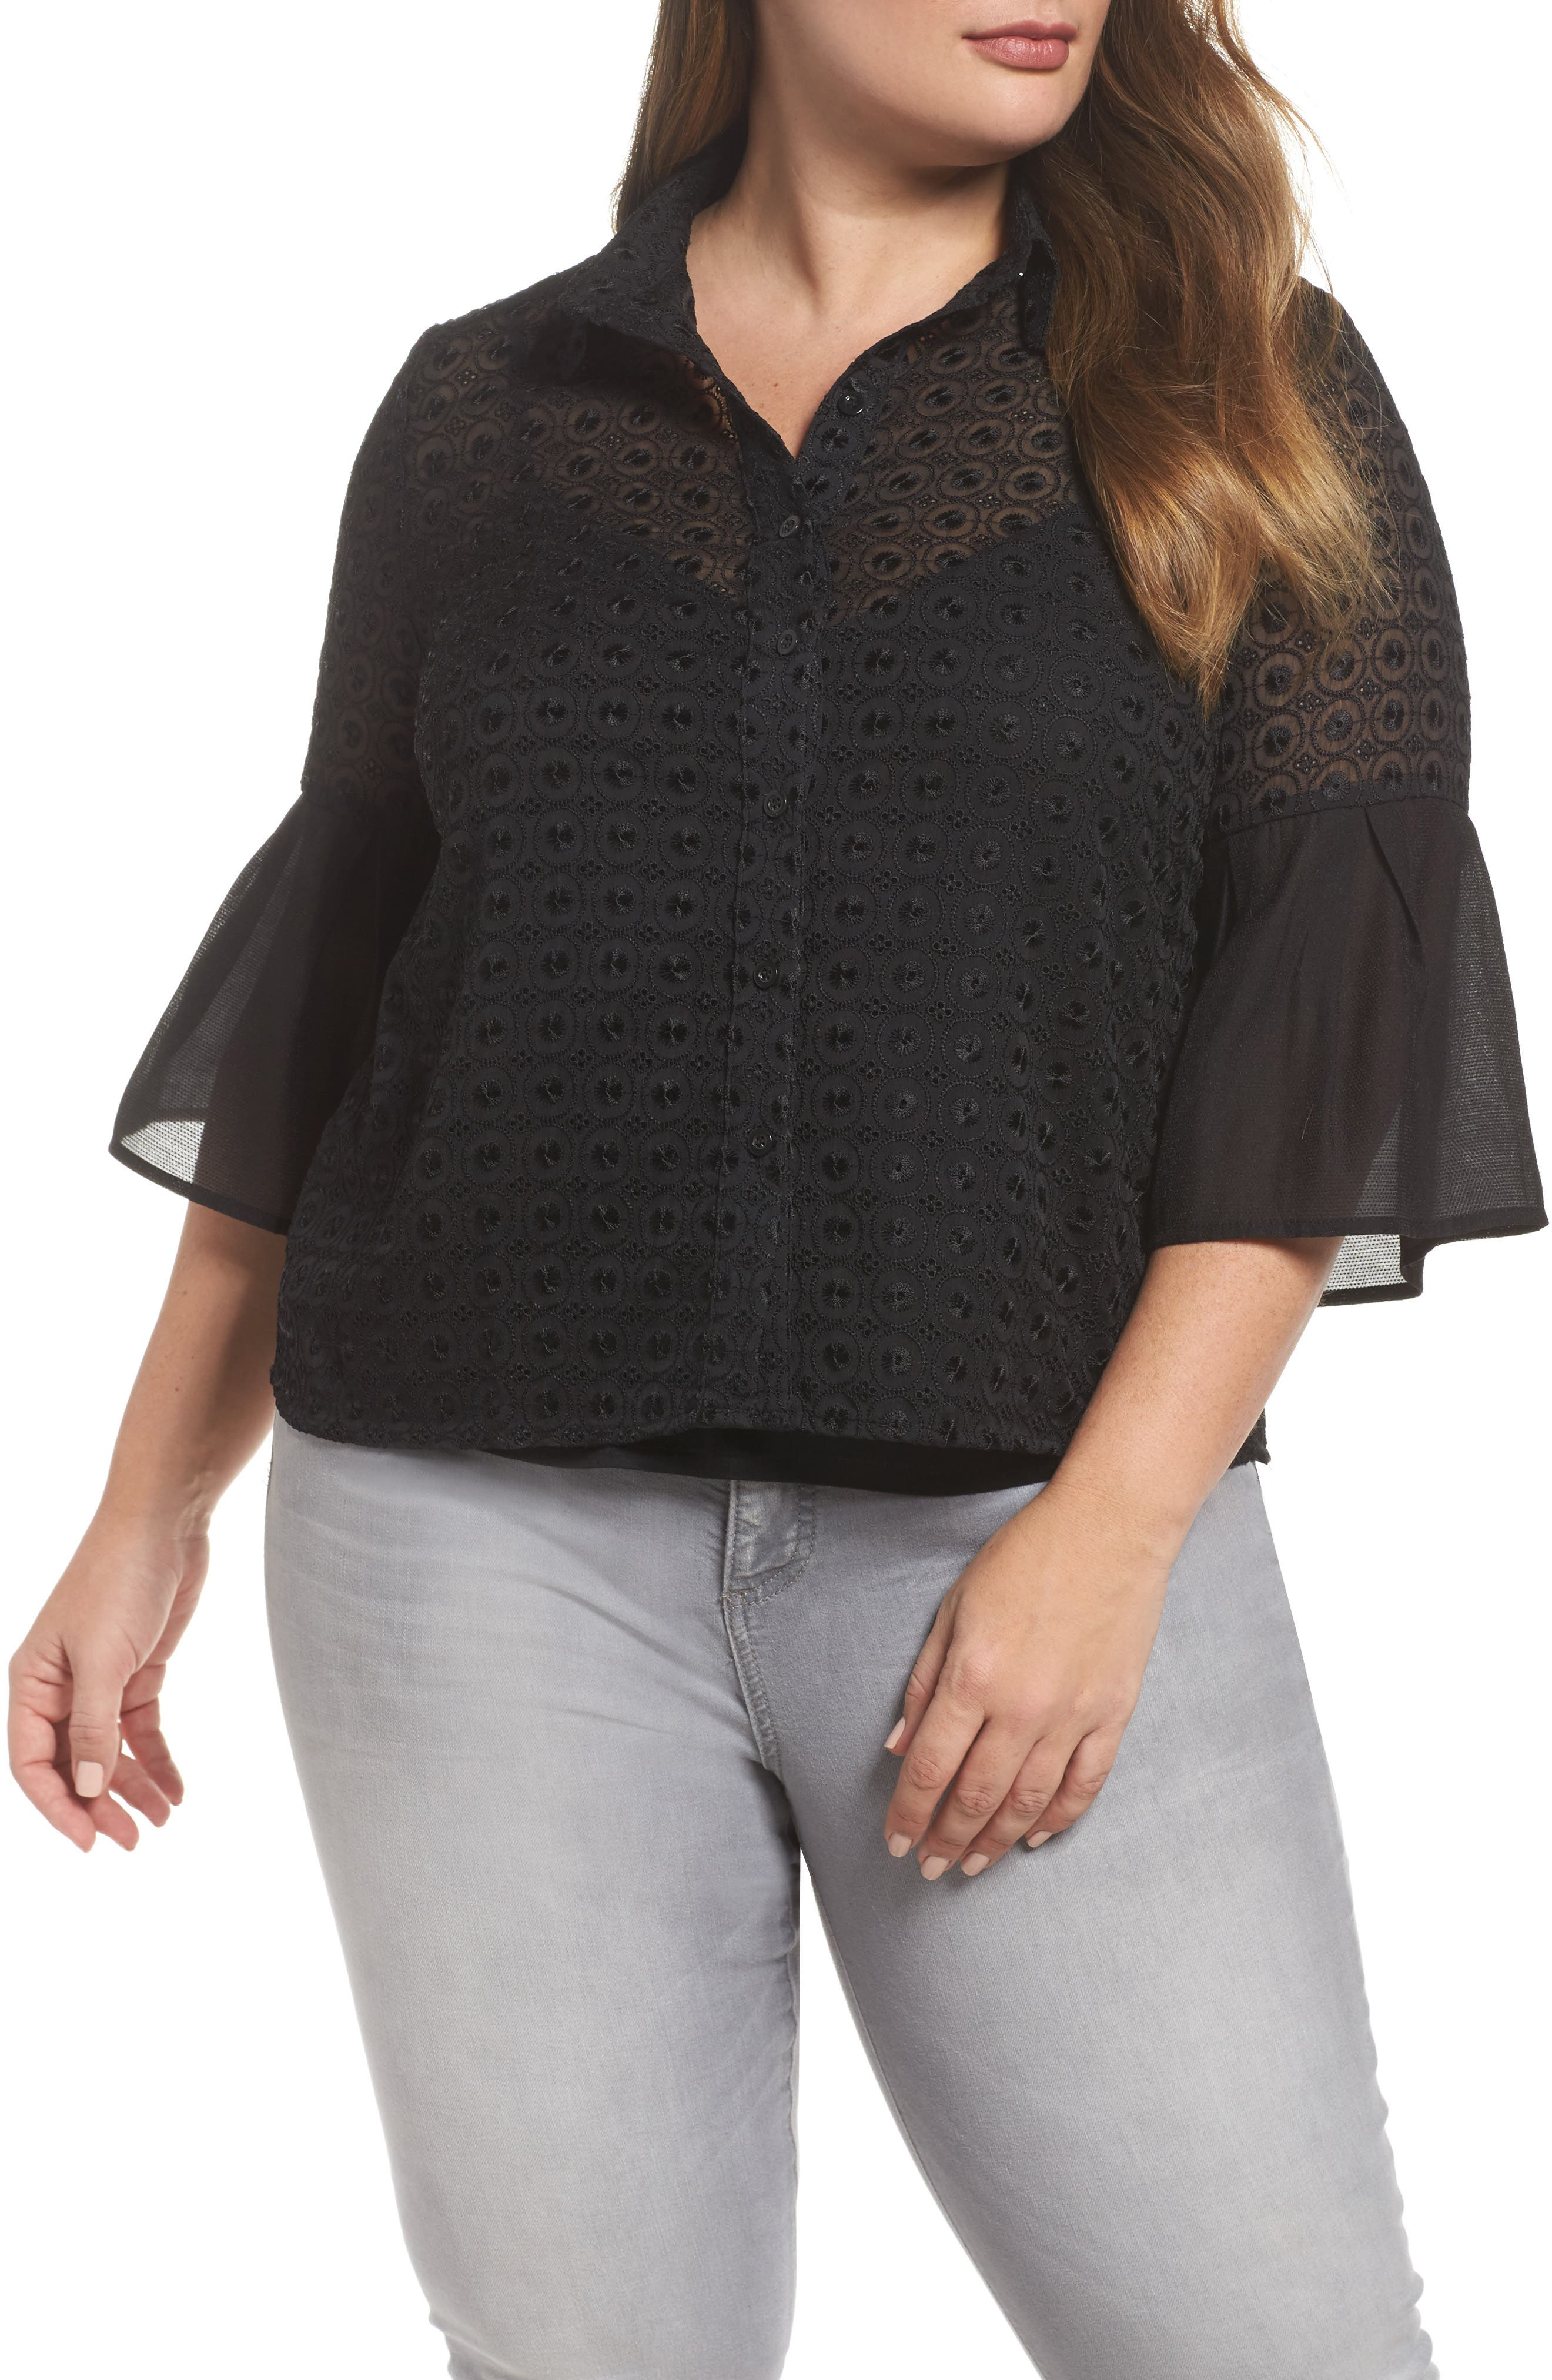 ELVI The Mantle Broderie Blouse (Regular & Plus Size)